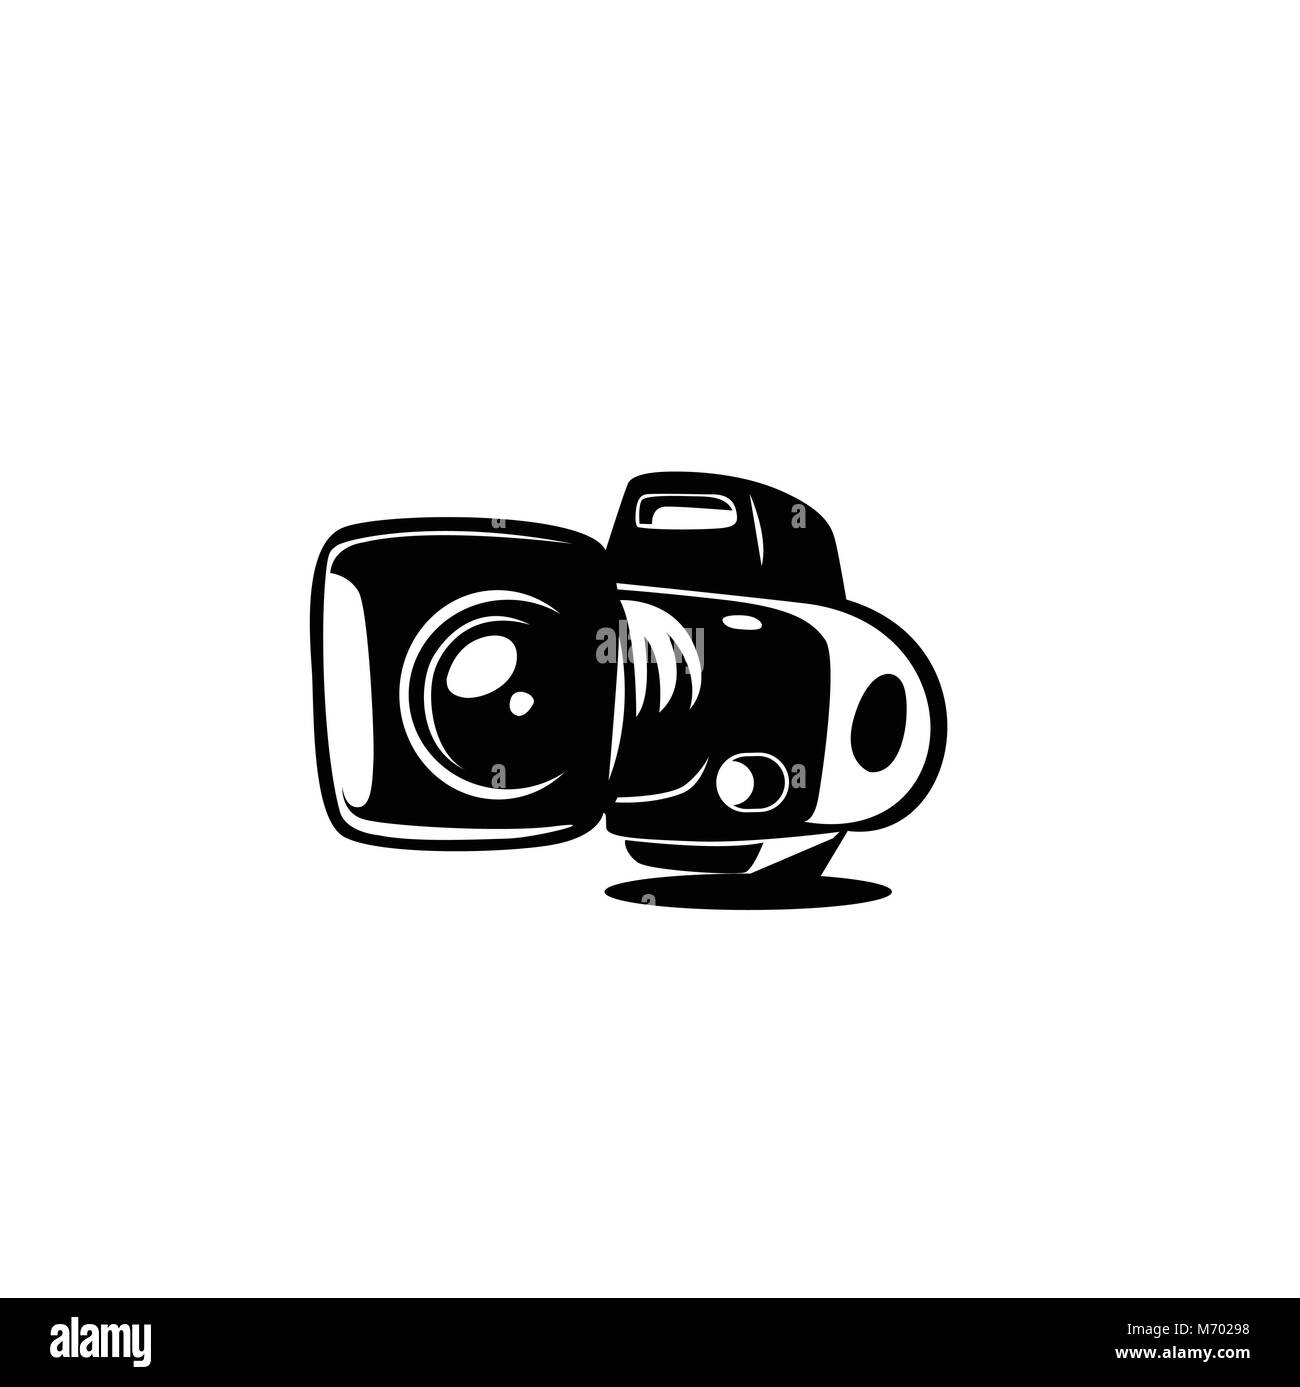 minimal logo of camera vector illutration. - Stock Image